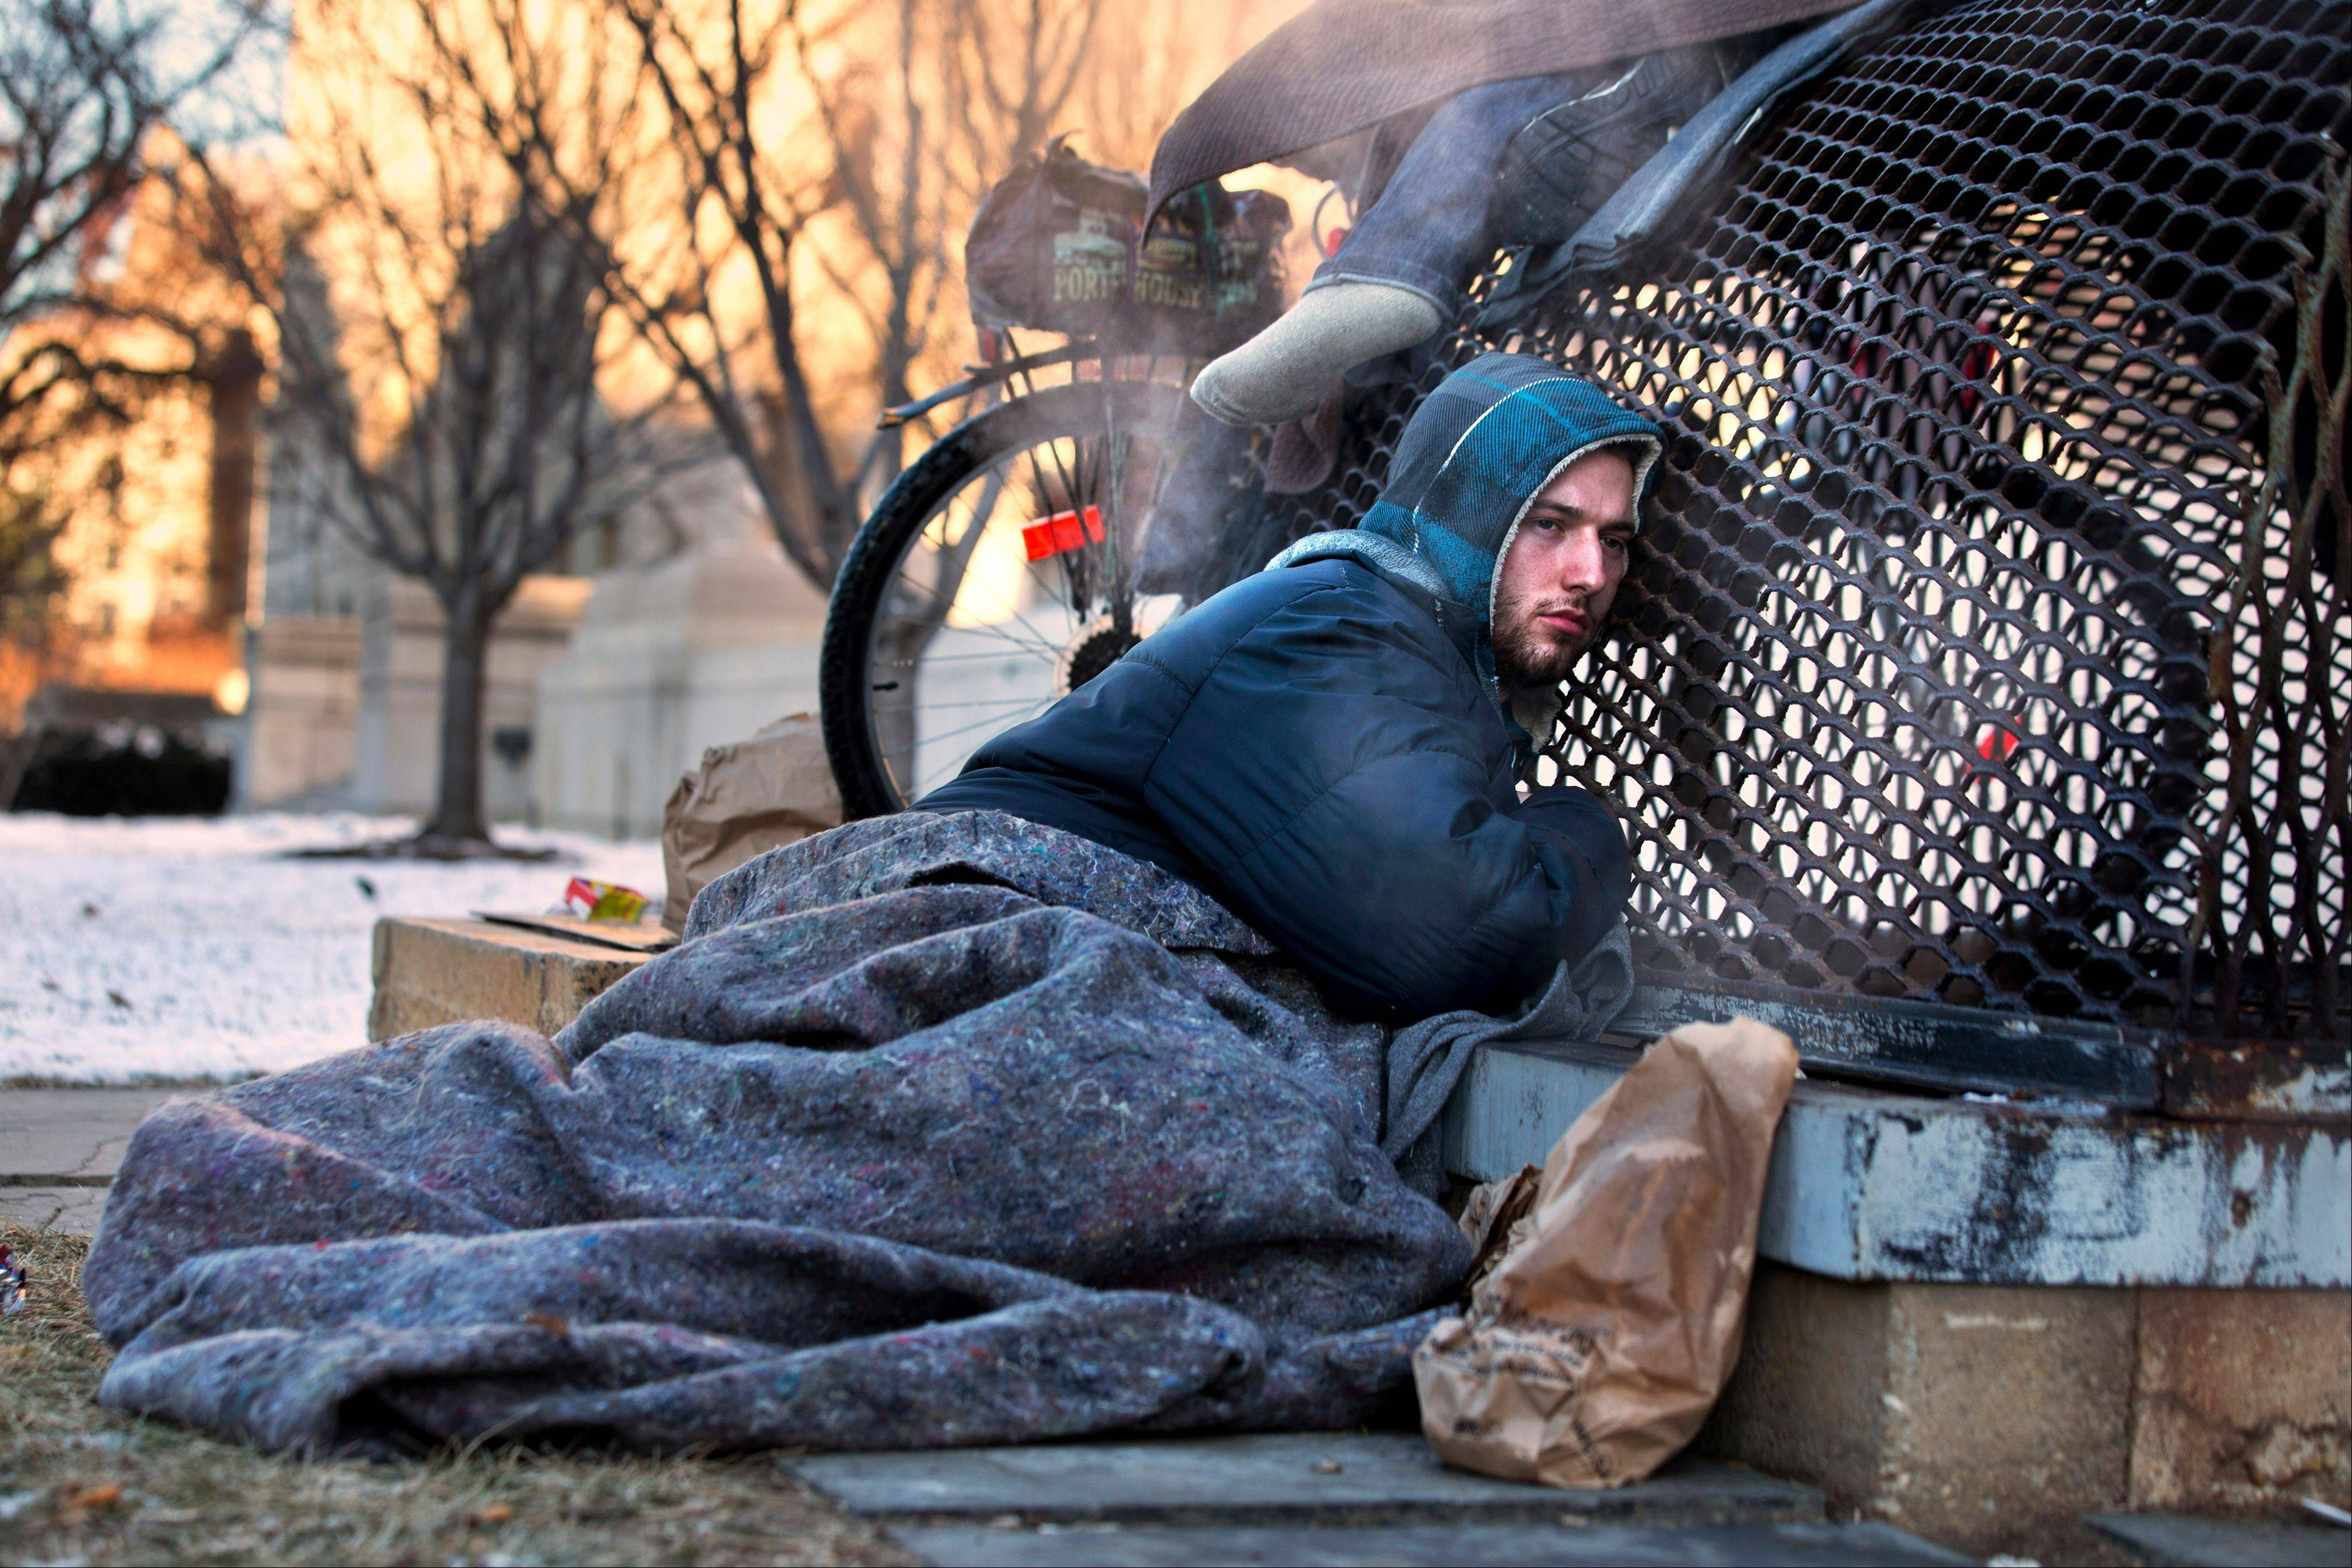 Nick warms himself Saturday on a steam grate with three other homeless men by the Federal Trade Commission, just blocks from the Capitol, during frigid temperatures in Washington4. A winter storm that swept across the Midwest this week blew through the Northeast on Friday, leaving bone-chilling cold in its wake.